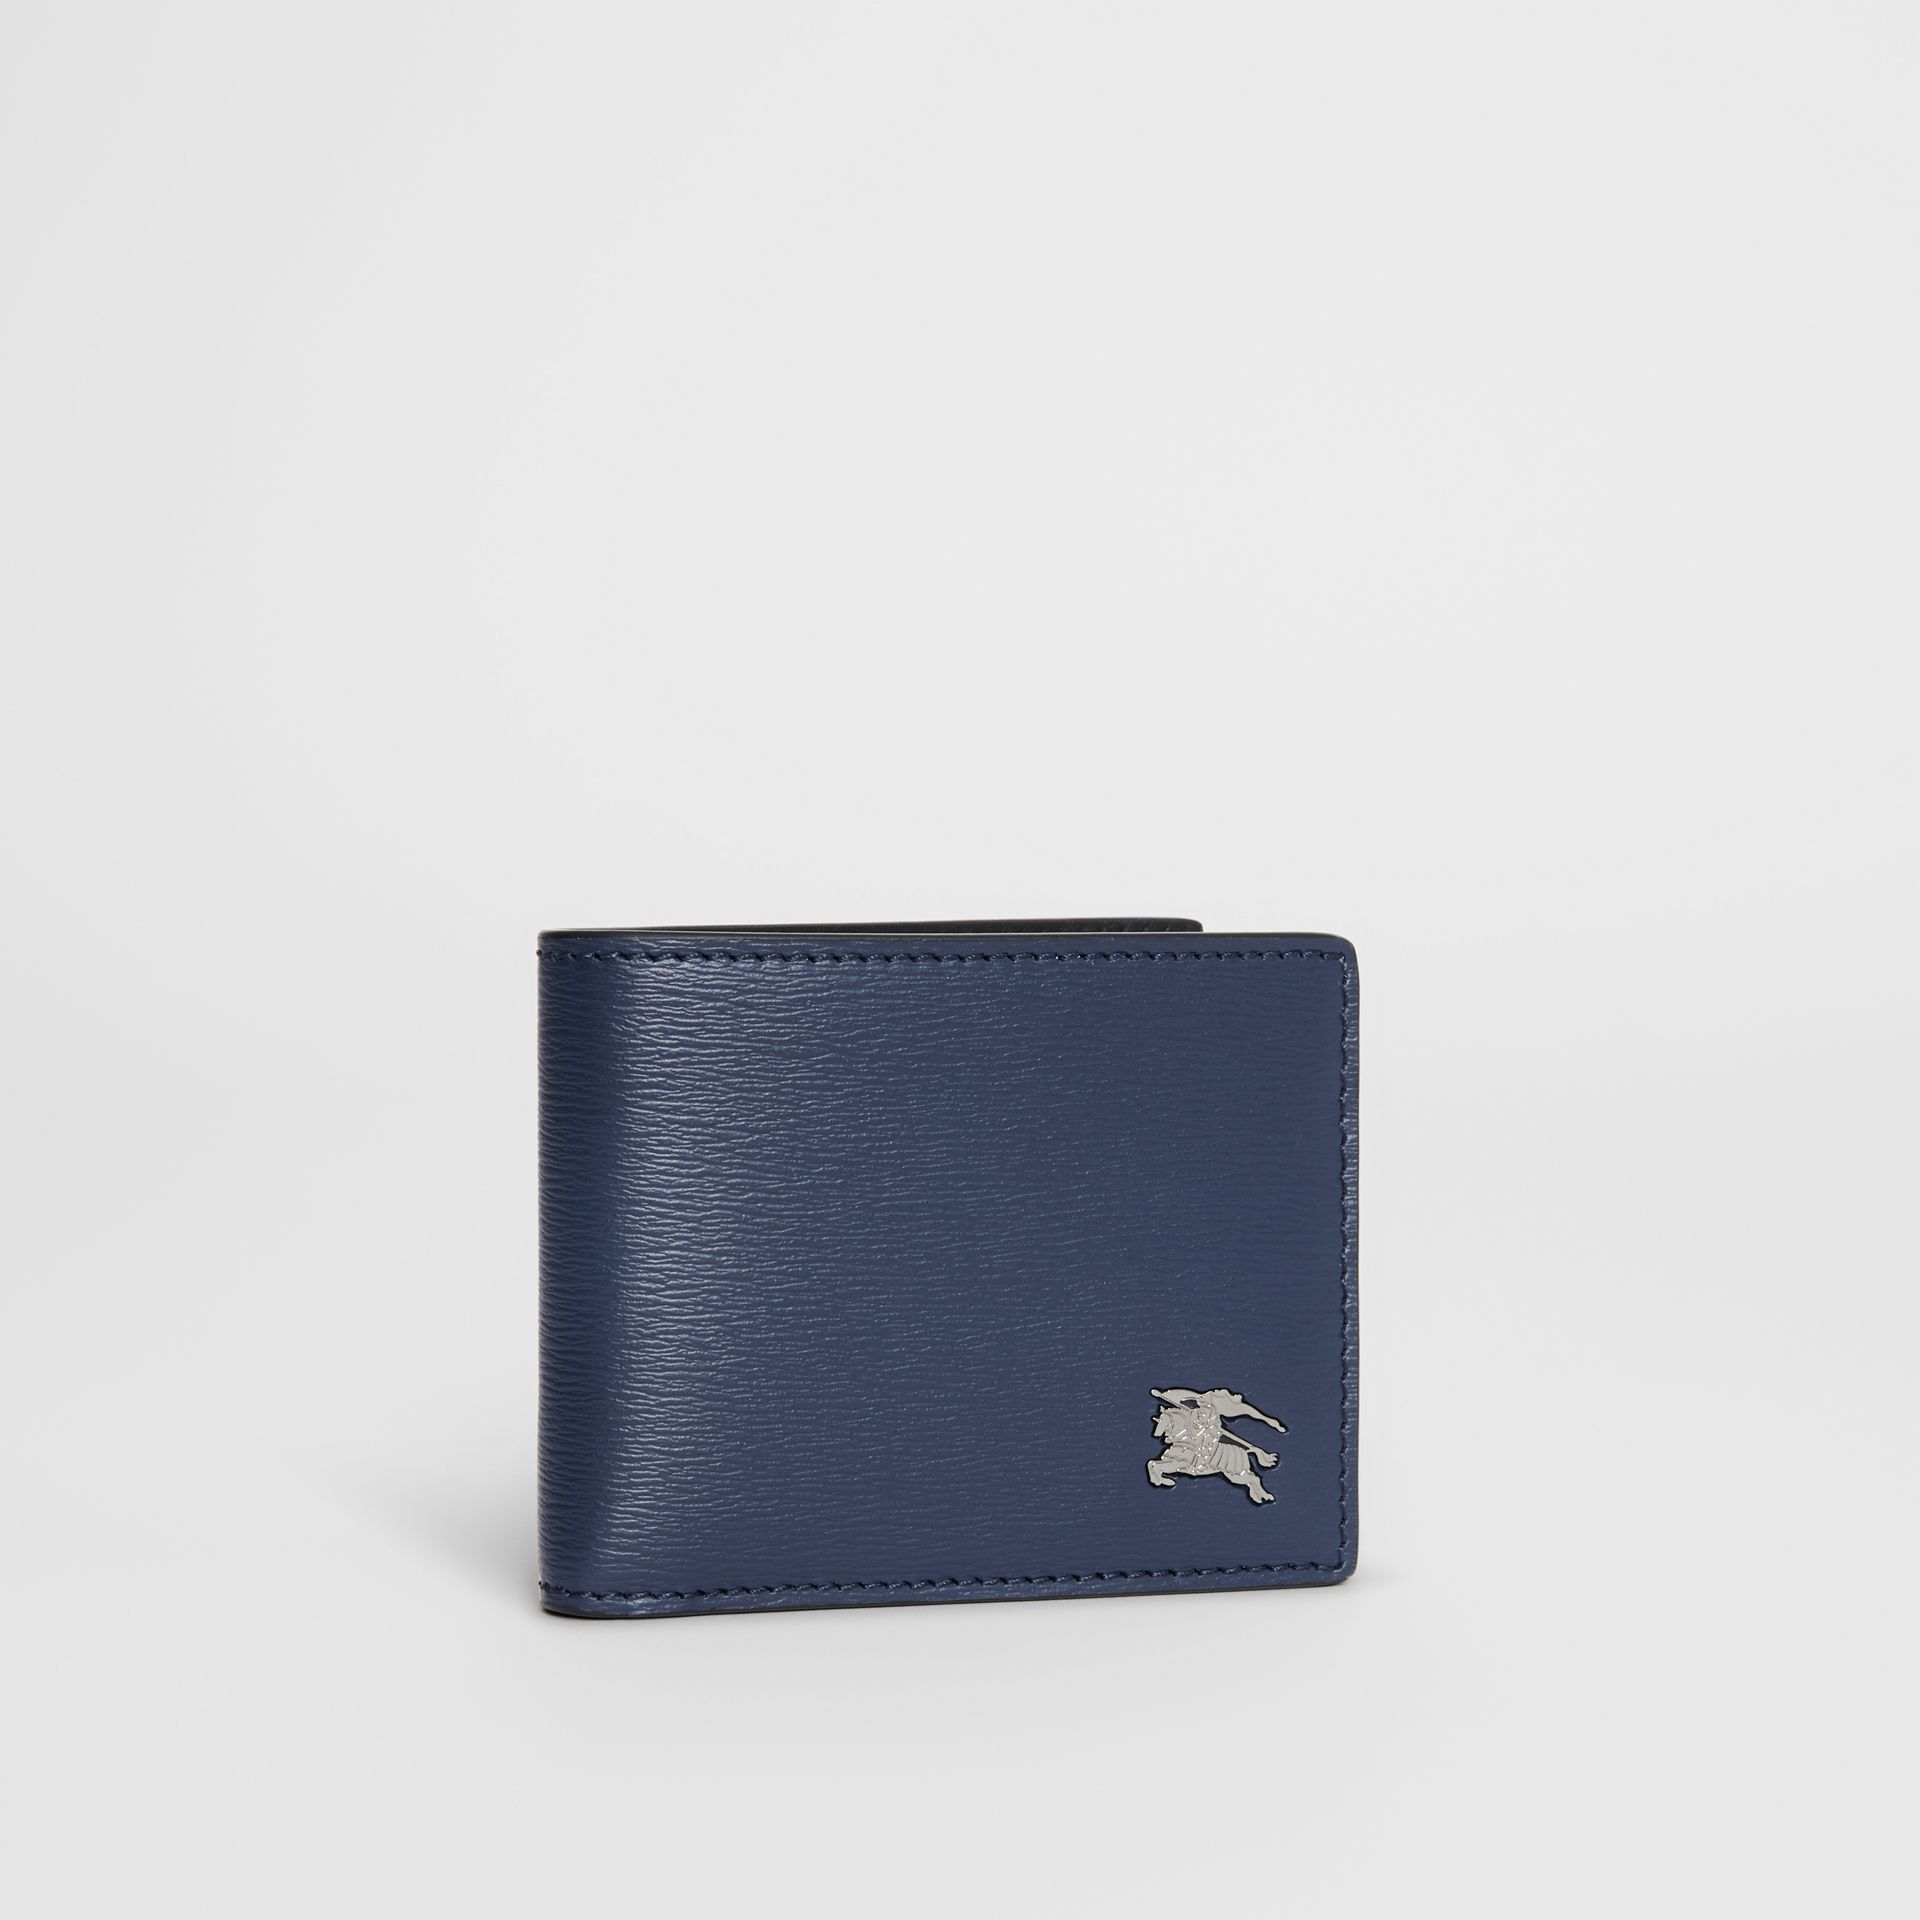 London Leather Bifold Wallet in Navy - Men | Burberry Singapore - gallery image 3